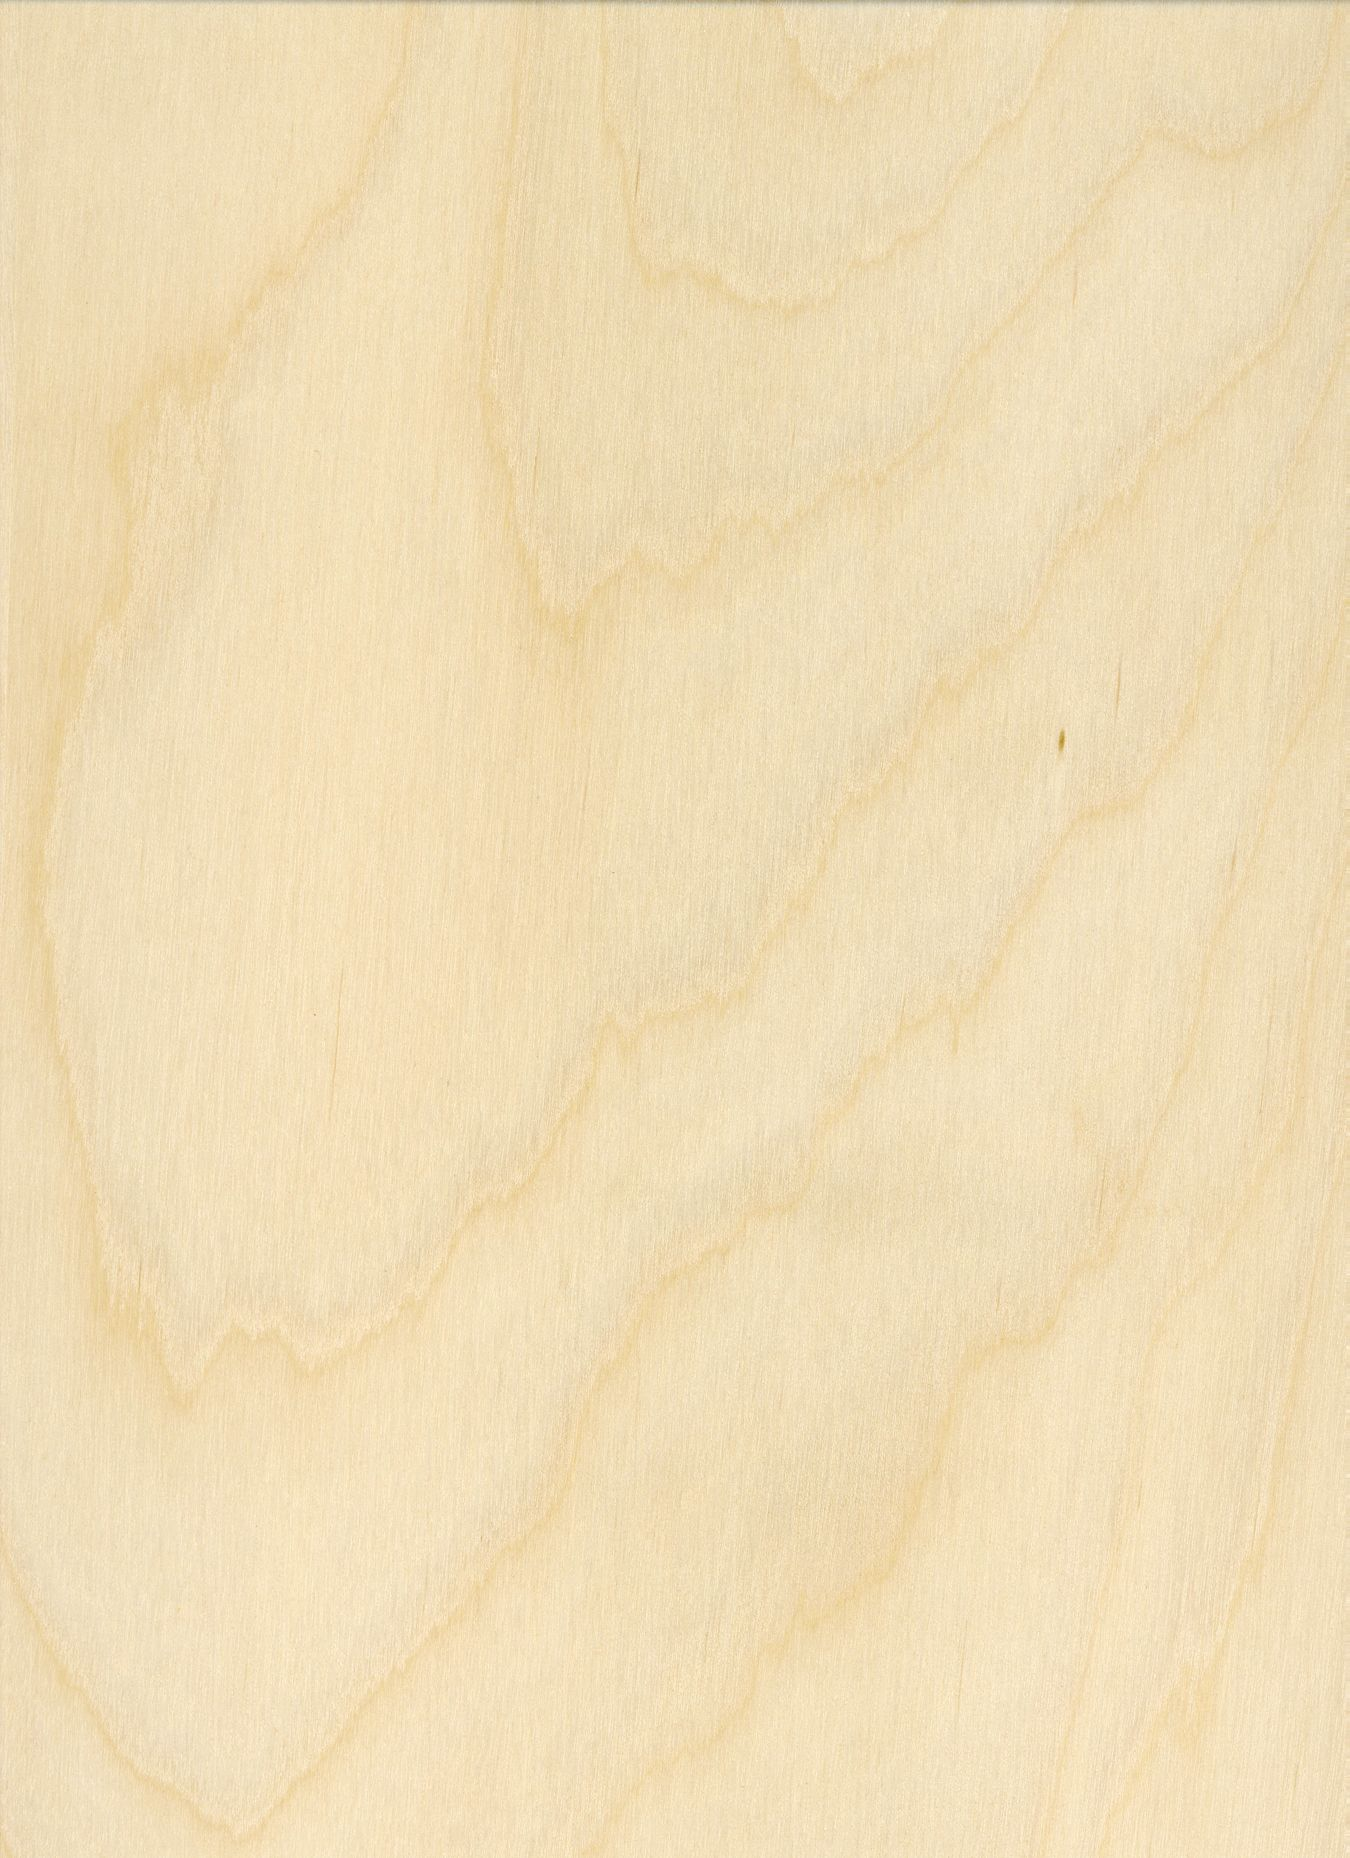 birchwood ply christmas food pinterest texture wallpaper and